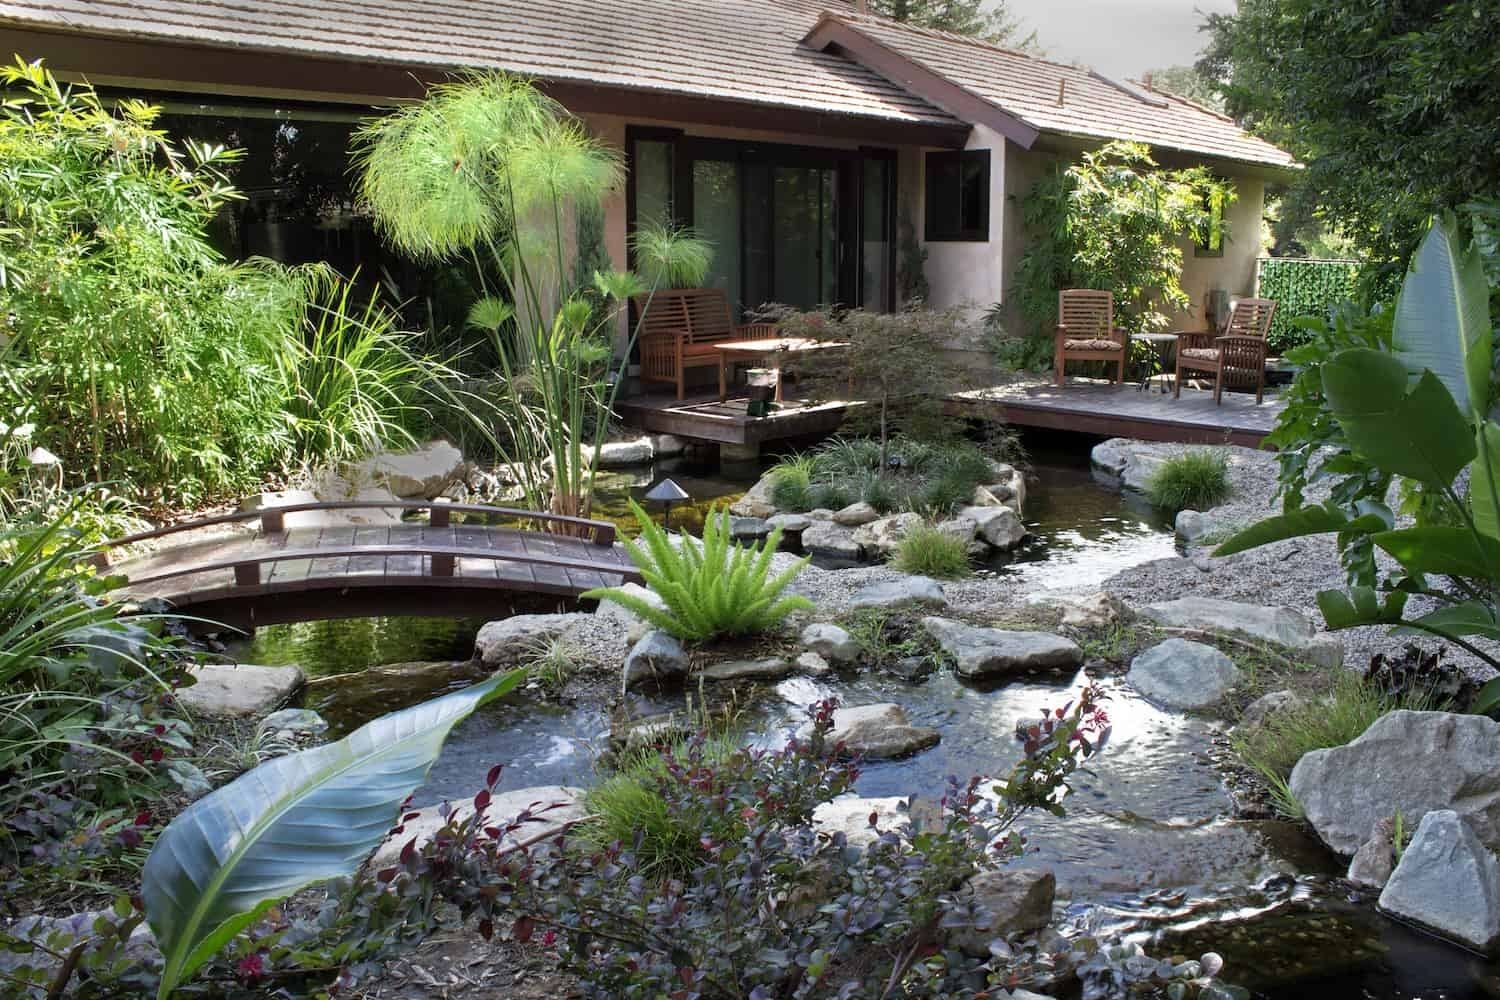 Decorating With An Asian Landscape Design - Pacific Outdoor Living with Zen Garden Landscape Design